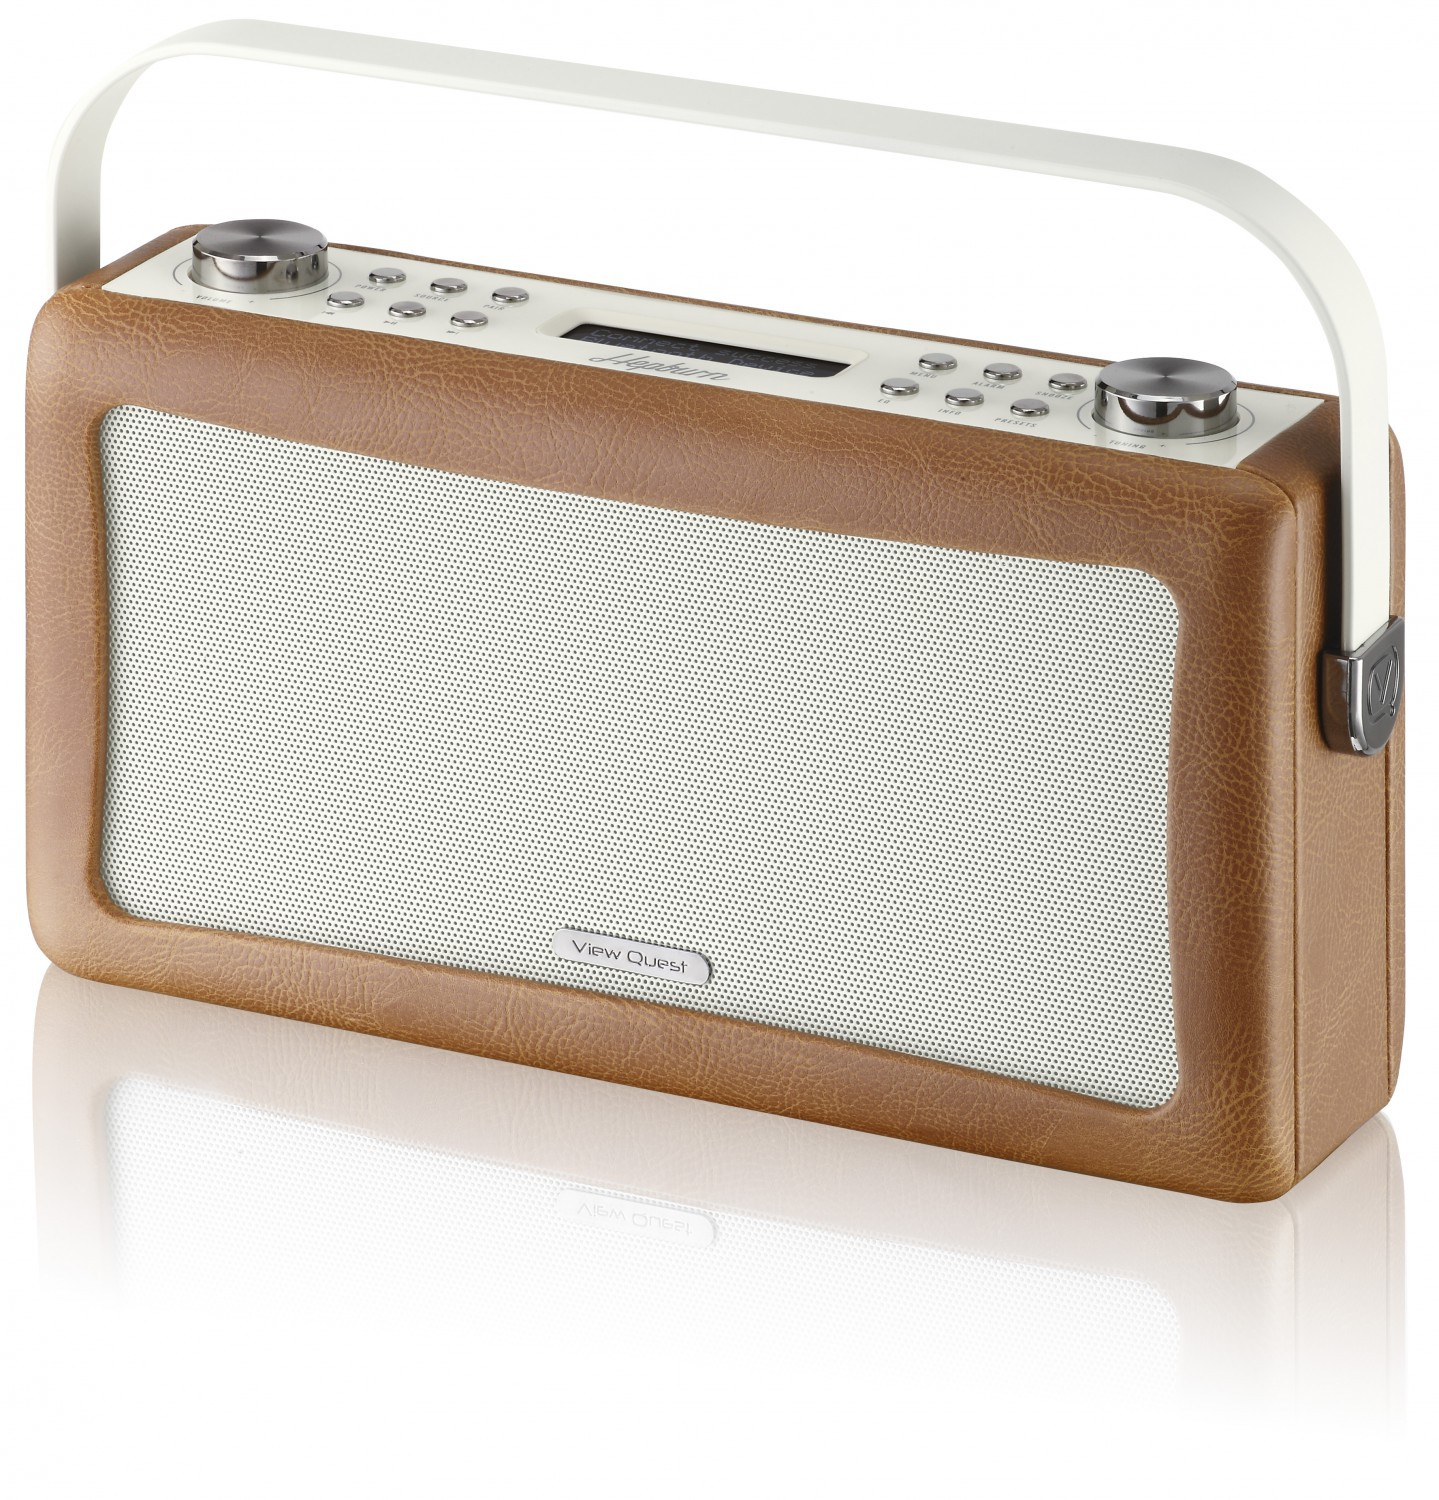 view quest hepburn dab fm digital radio wecker bluetooth retro iphone android b ebay. Black Bedroom Furniture Sets. Home Design Ideas